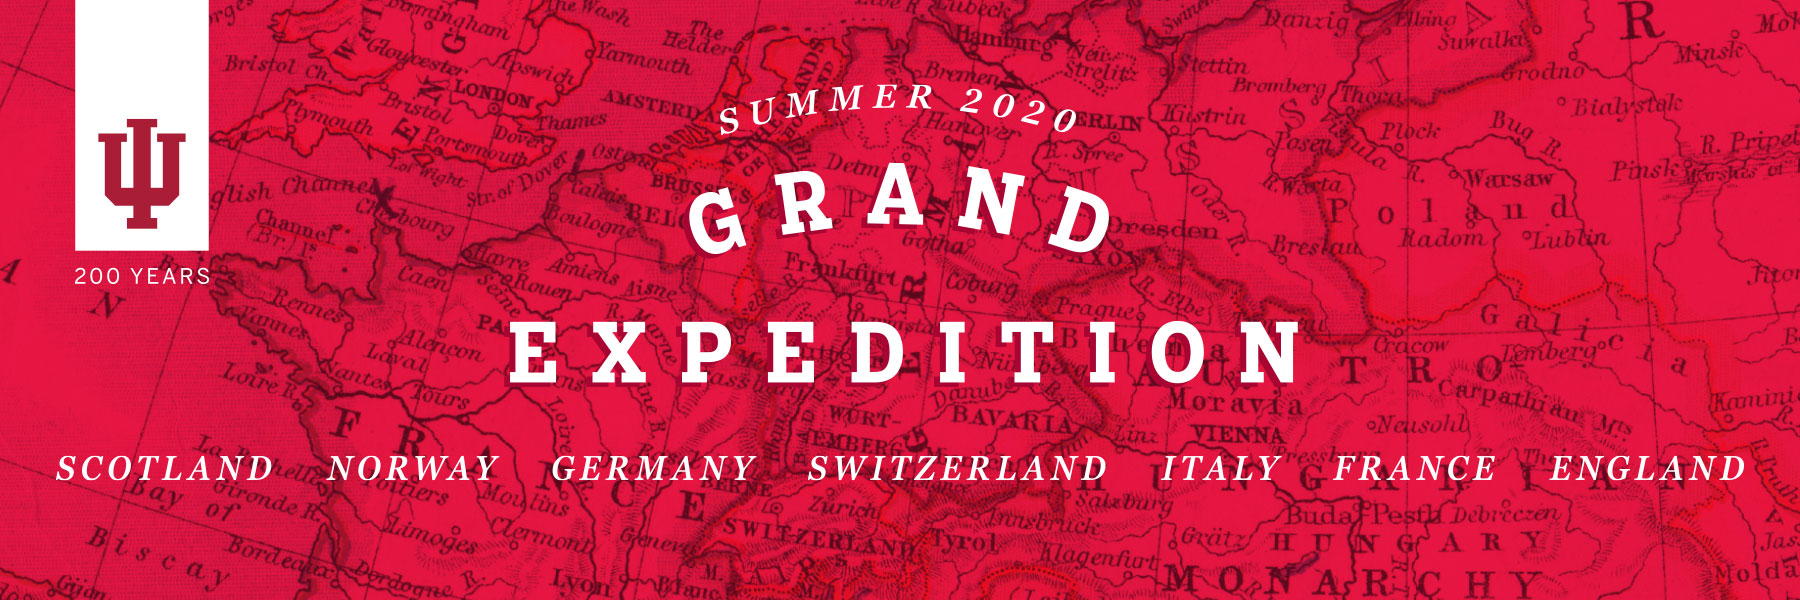 IU 200 Years. Summer 2020. Grand Expedition. Scotland, Norway, Germany, Switzerland, Italy, France, England